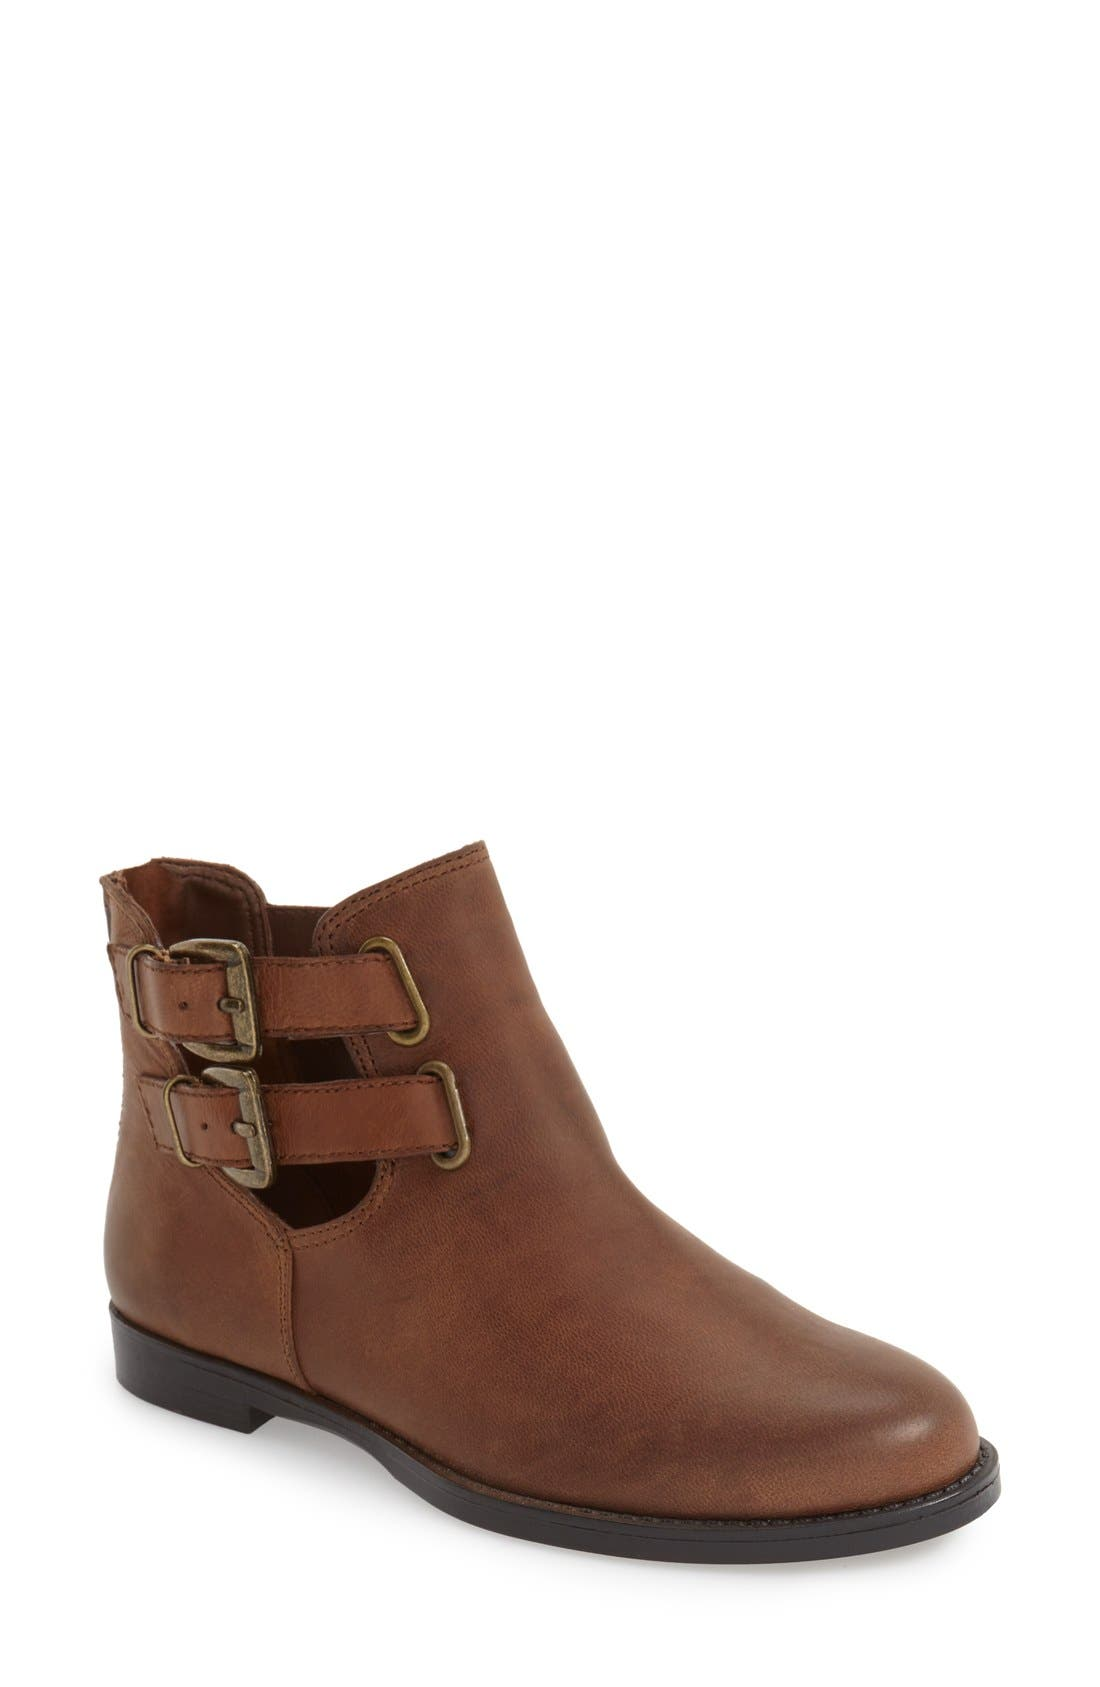 BELLA VITA 'Ramona' Double Buckle Bootie